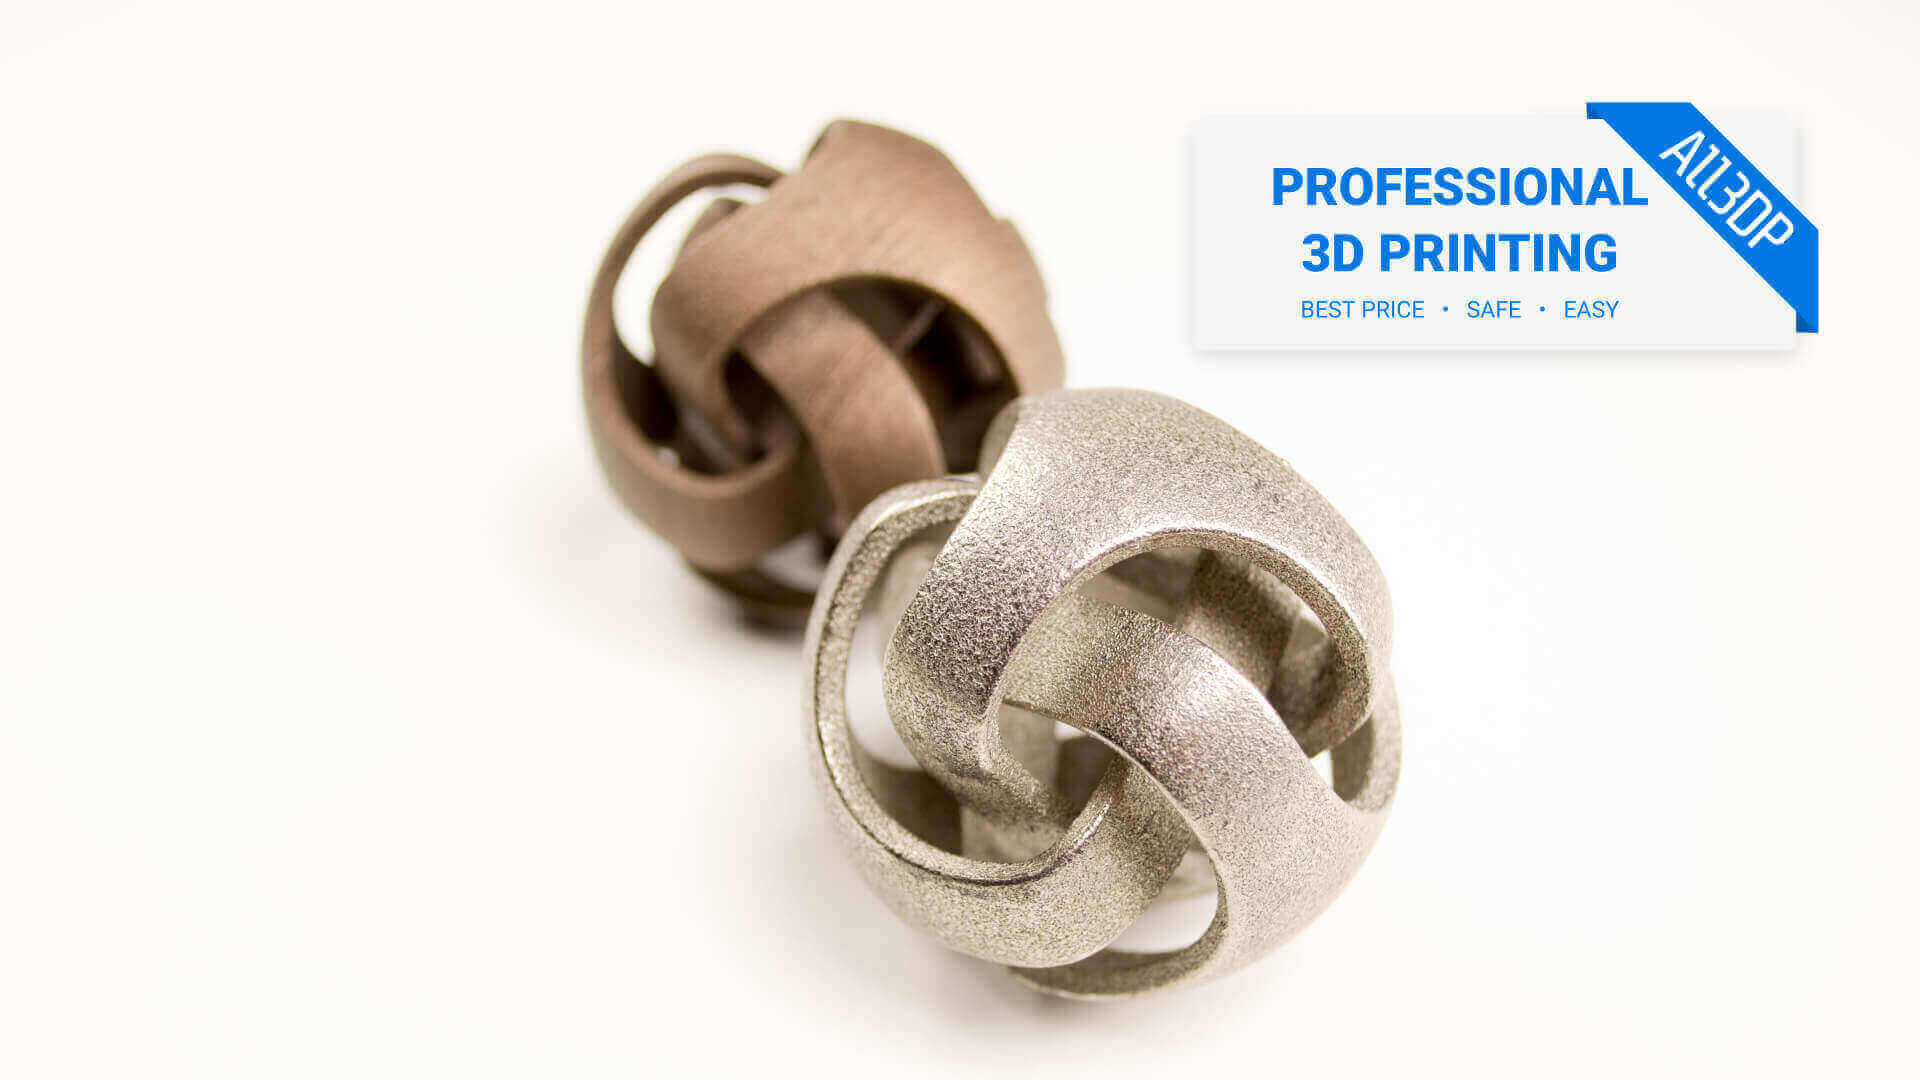 3D Printing Price Comparison for Industrial-Grade 3D Printing | All3DP